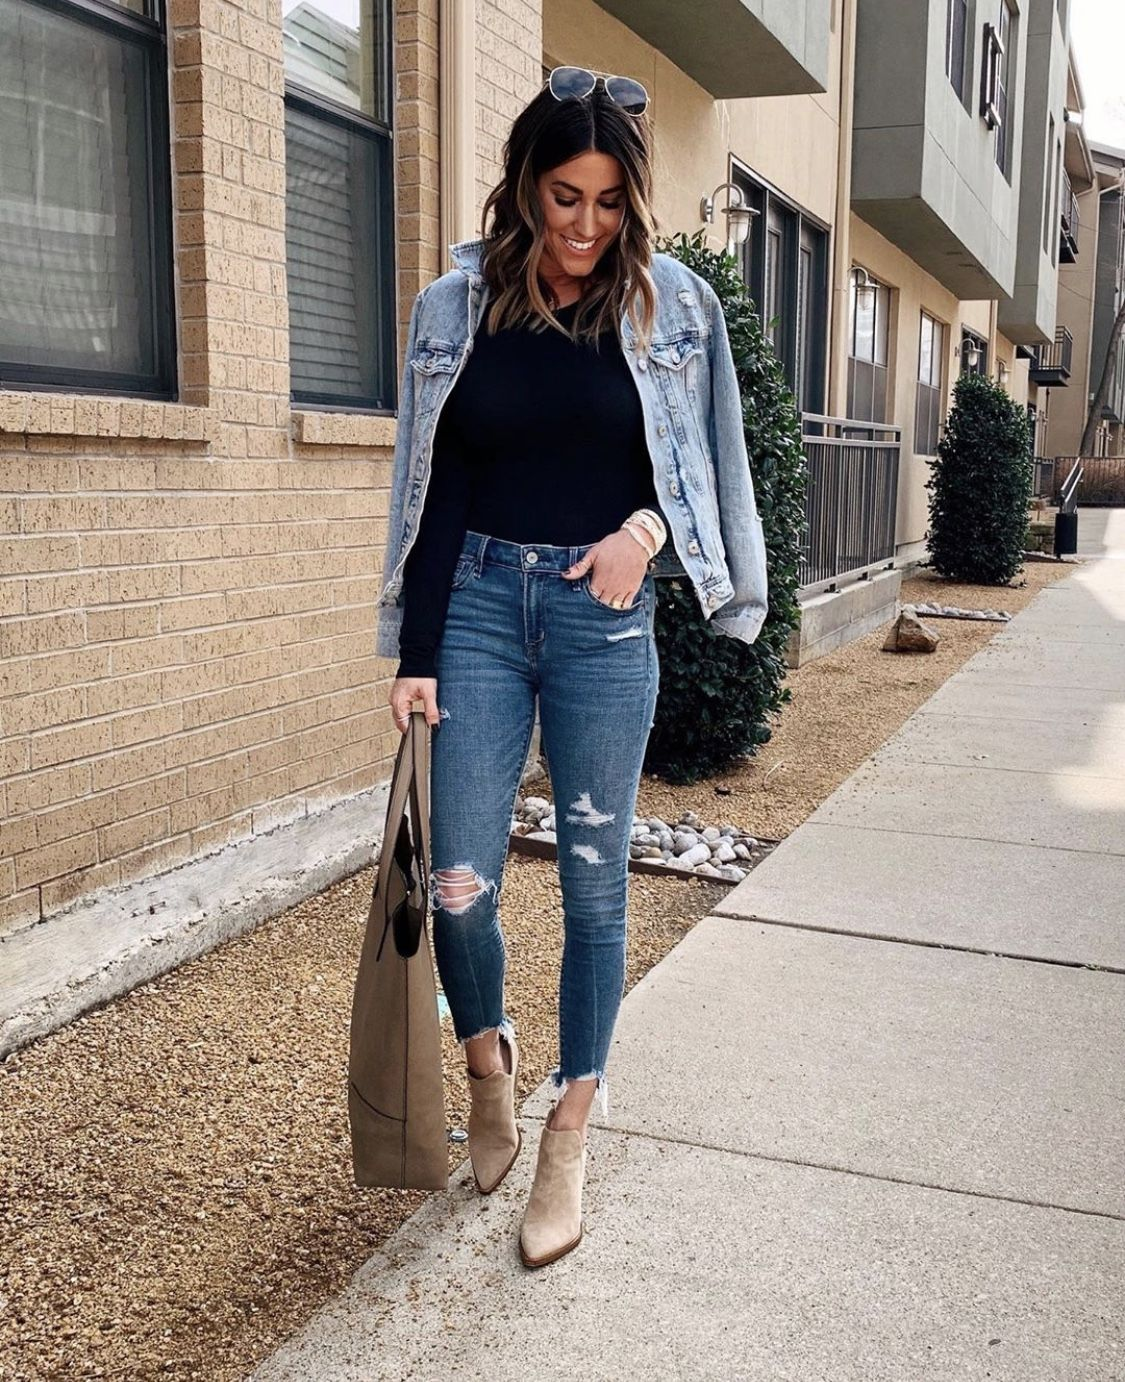 30 Ways To Style A Denim Jacket The Sister Studio In 2021 Casual Chic Outfit Spring Work Outfits Denim Jacket [ 1382 x 1125 Pixel ]